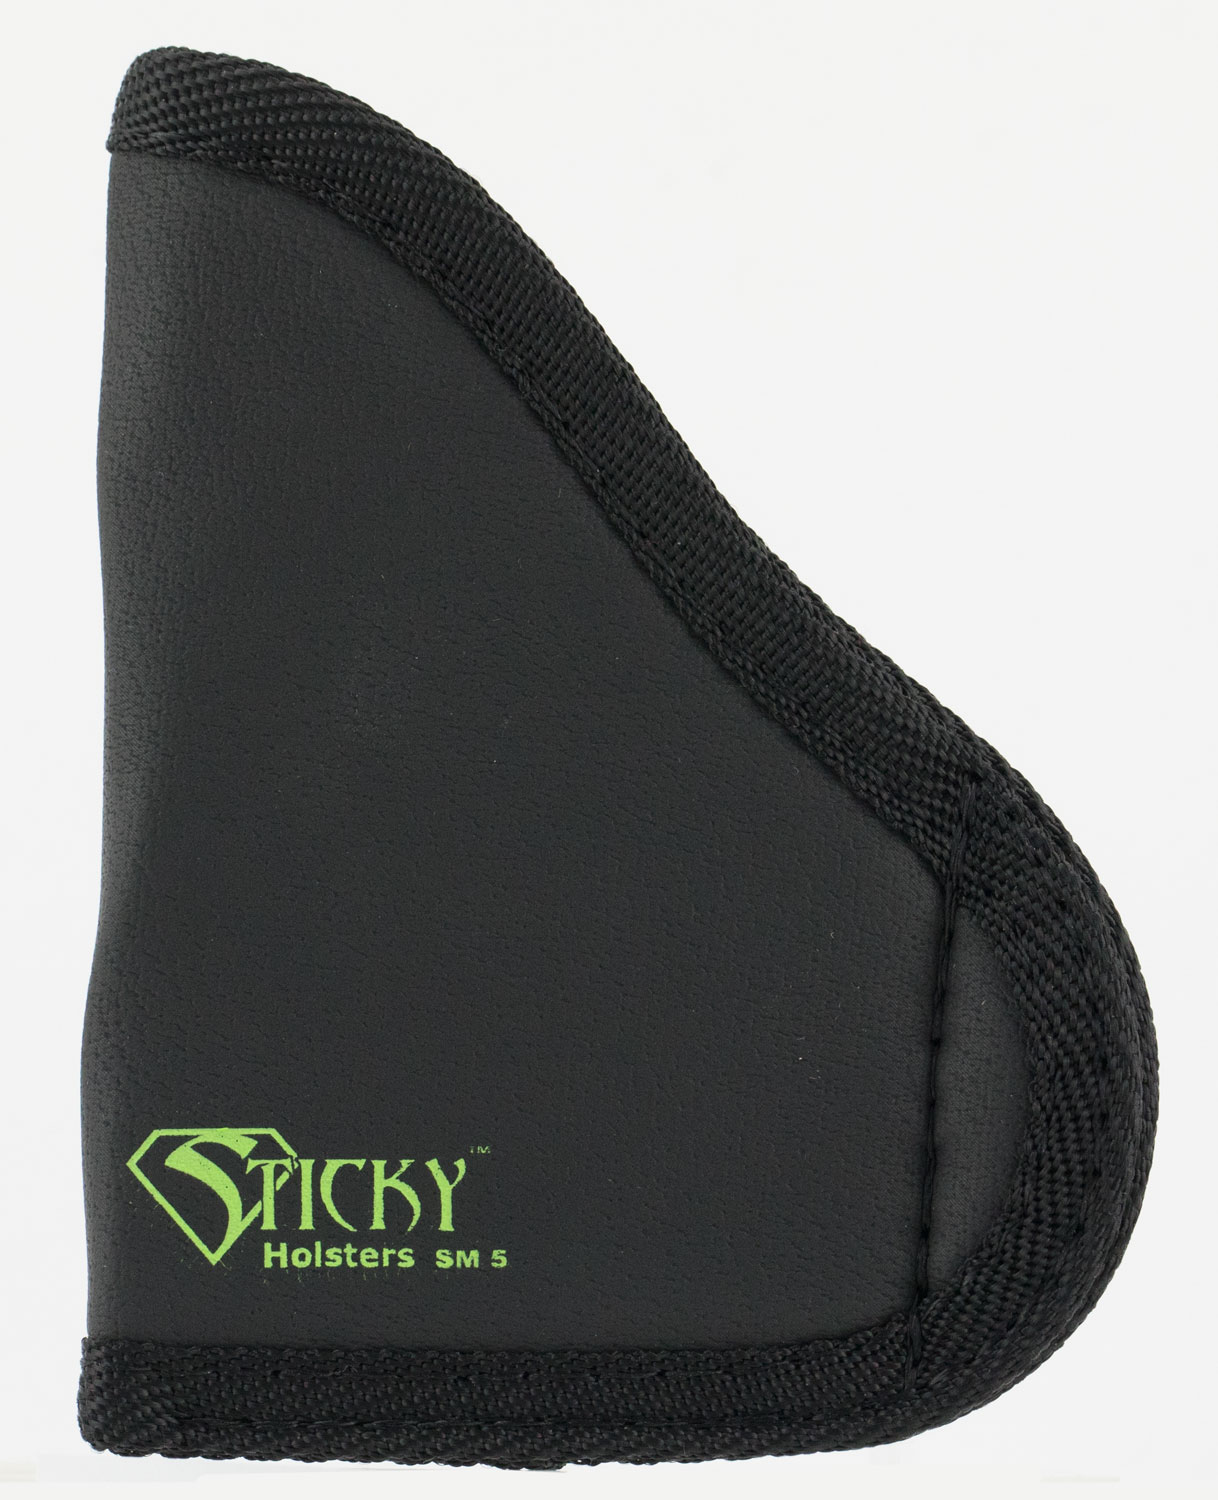 STICKY SM-5 FOR GLK 42 DB9 SIG P938